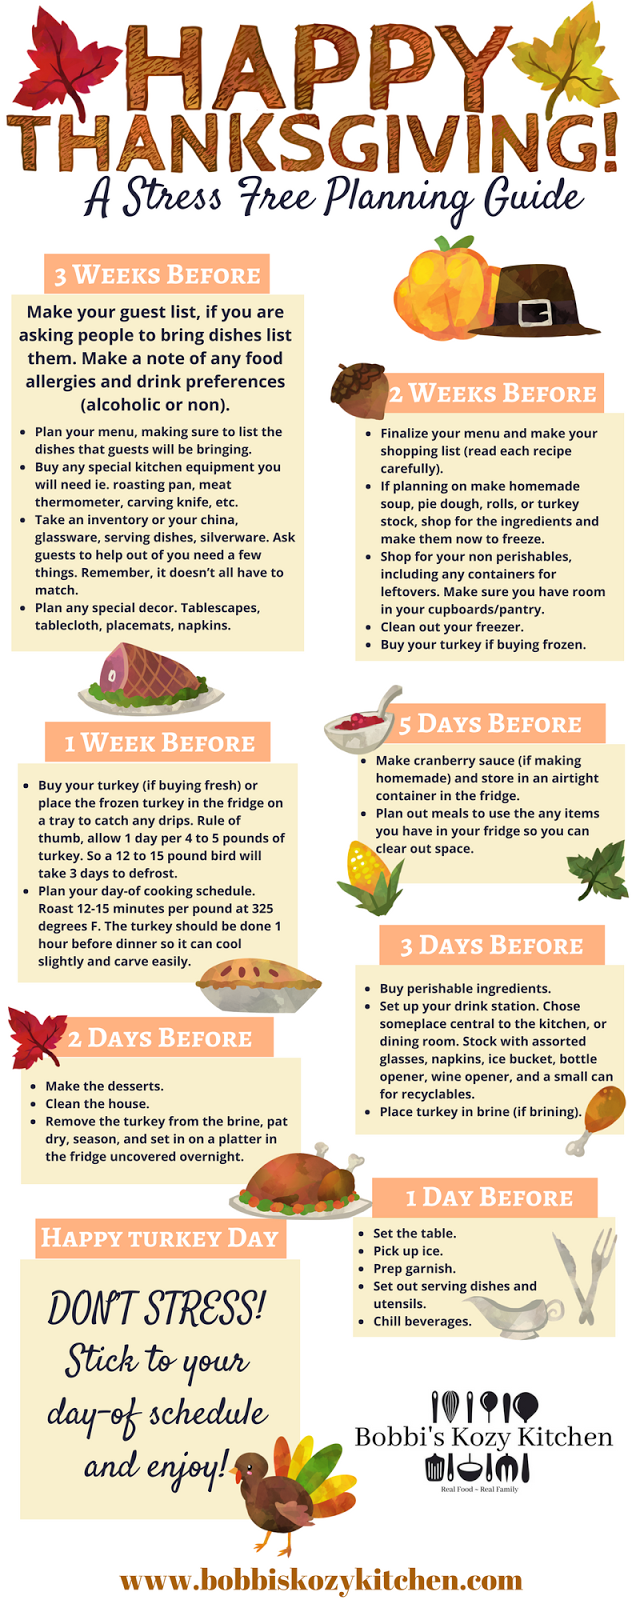 Stress-Free Thanksgiving Planning Guide + Free Downloadable Planner from www.bobbiskozykitchen.com #Thanksgiving #mealplanner #printable